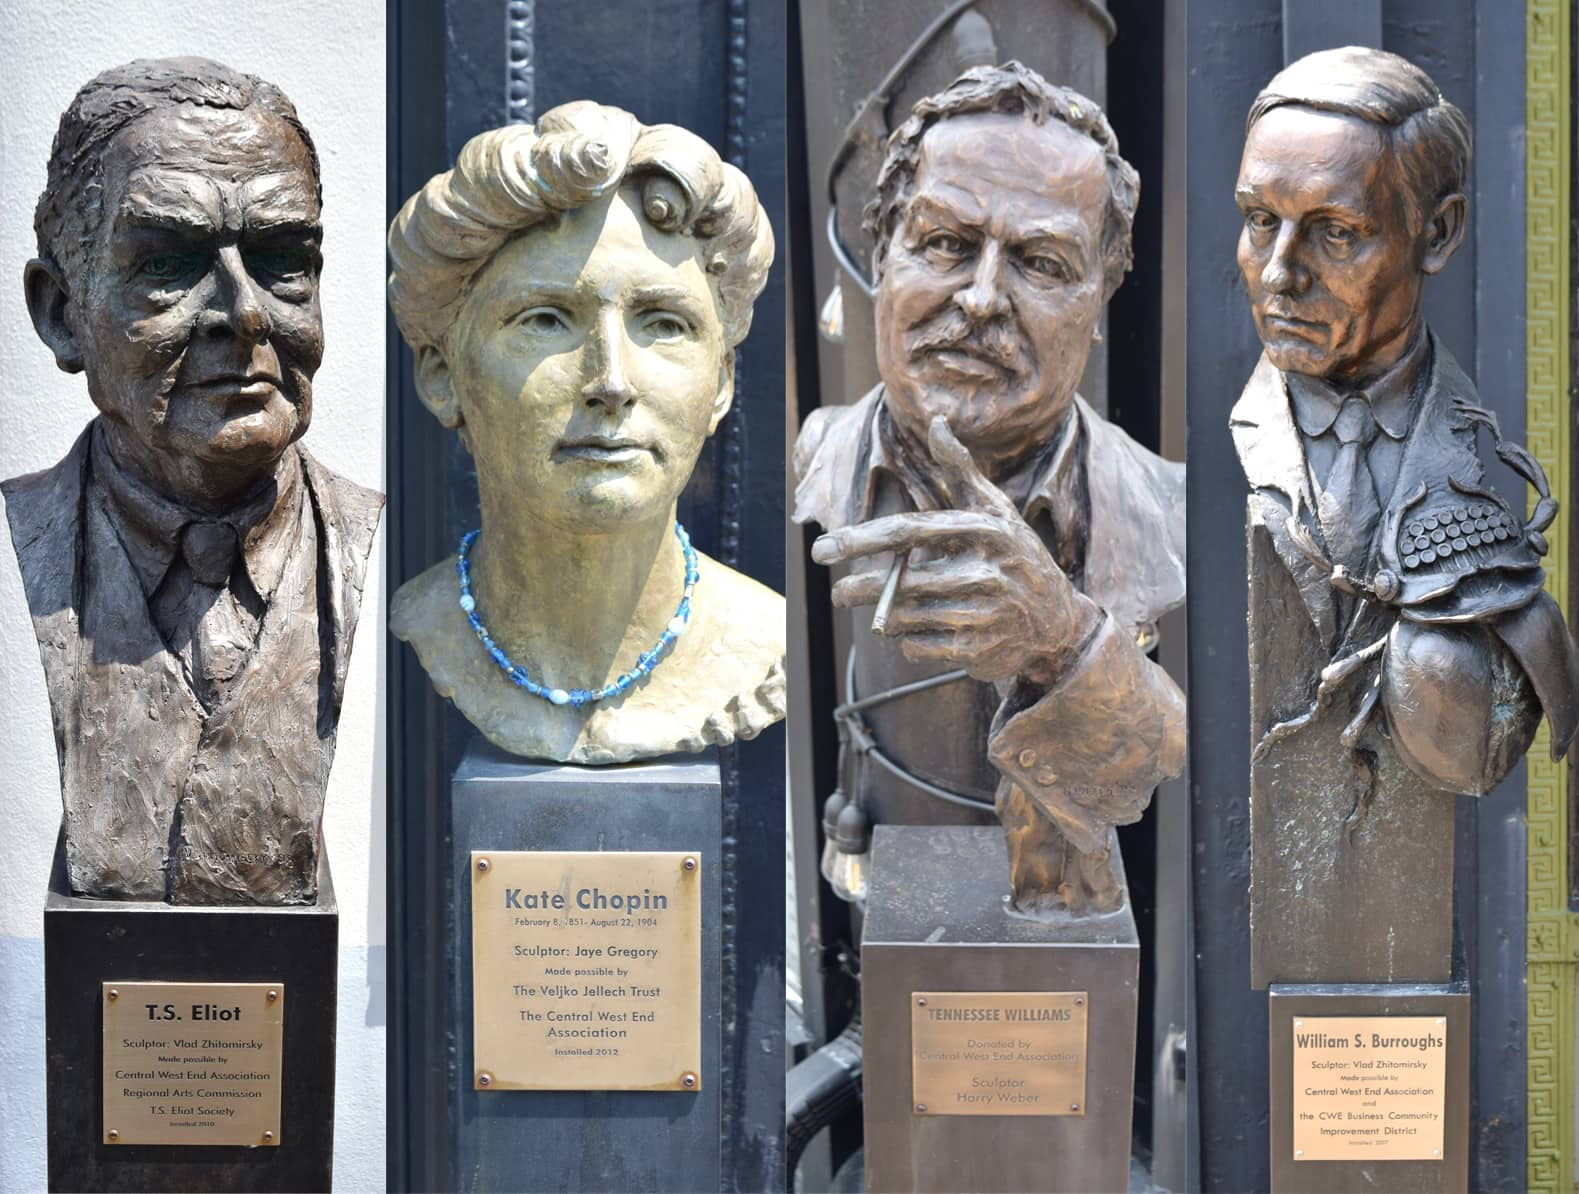 4 statues in Writers Corner in the Central West End - T.S. Elliot, Kate Chopin, Tennessee Williams, William S. Burroughs